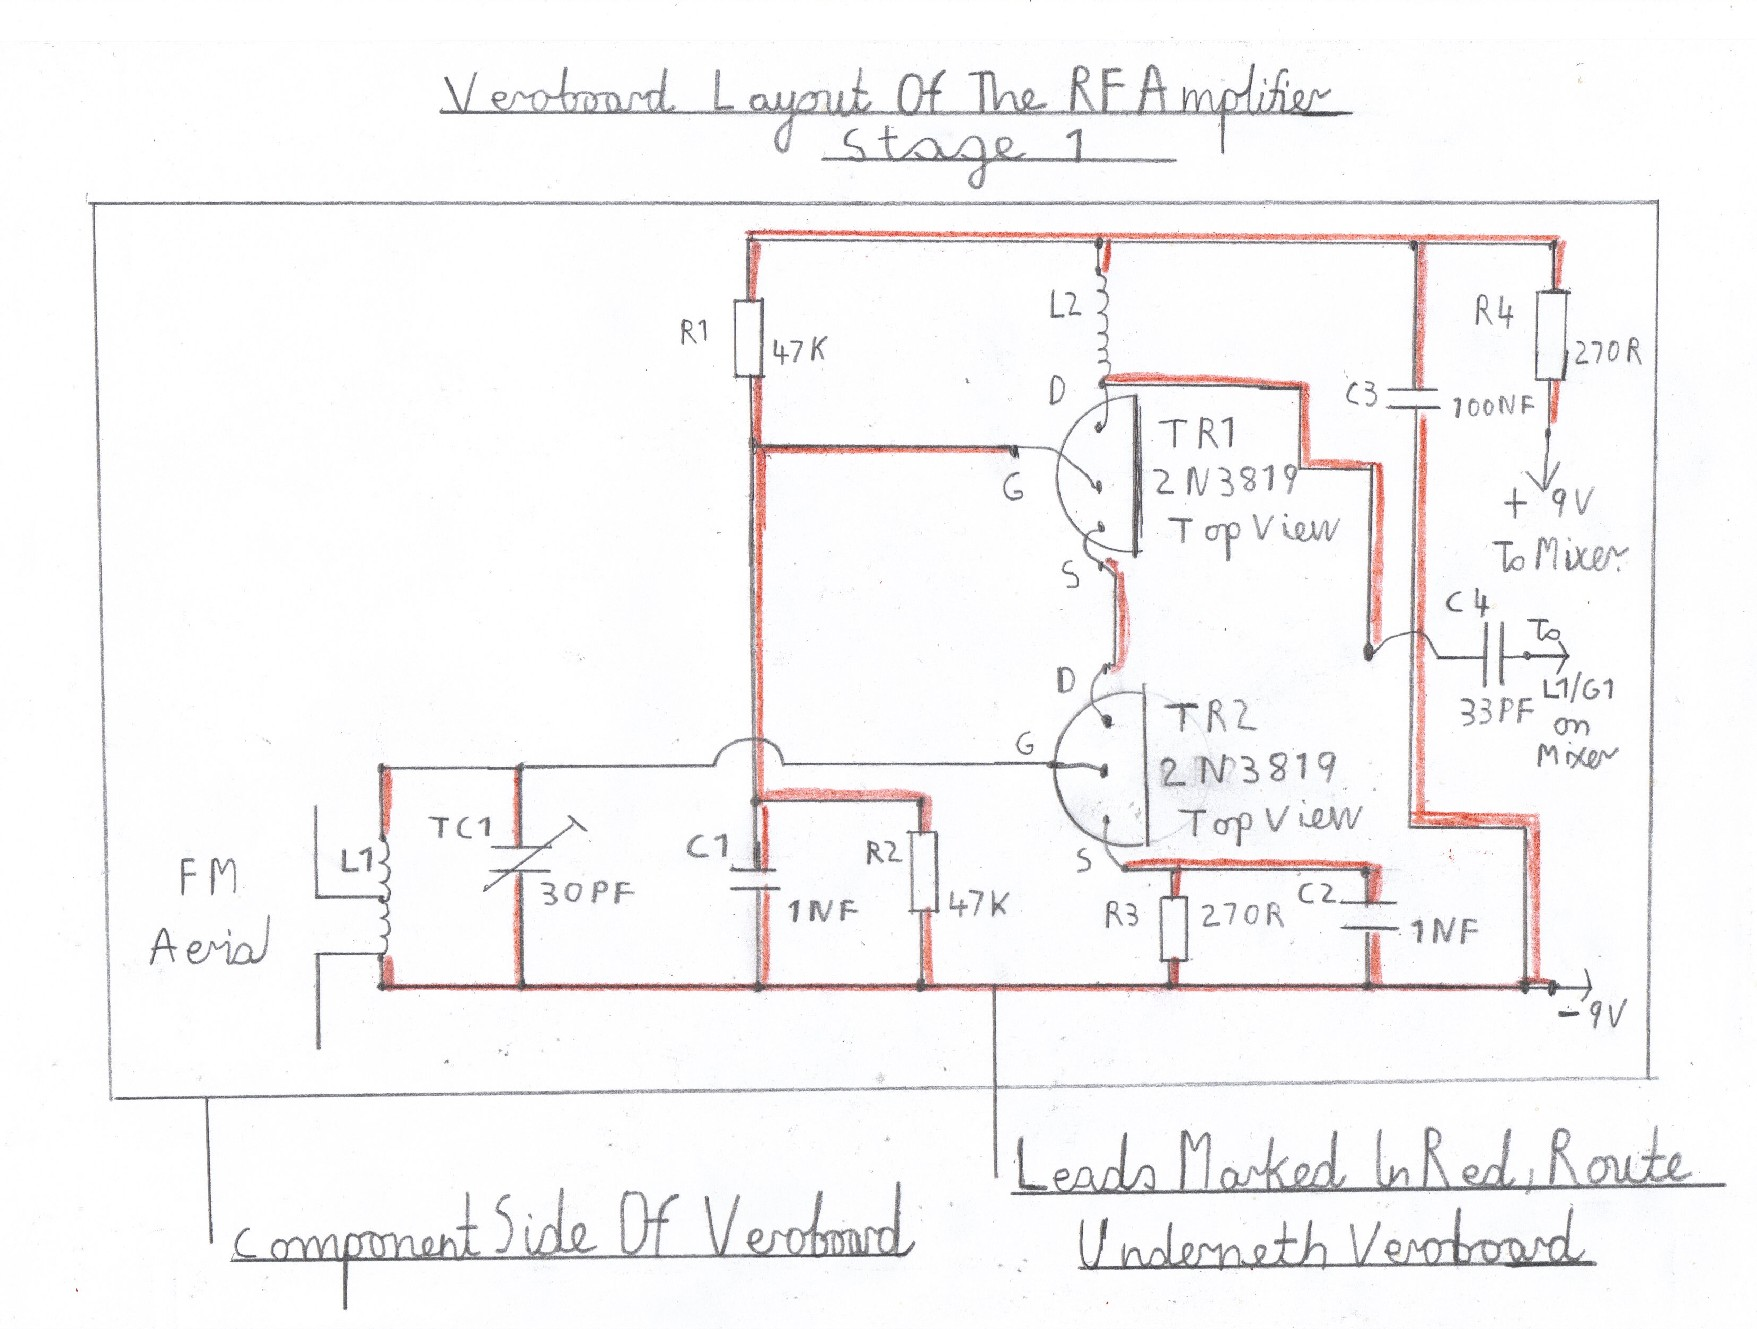 vhfrfampone transistor fm superhet receiver kitchen electrical wiring diagrams at crackthecode.co